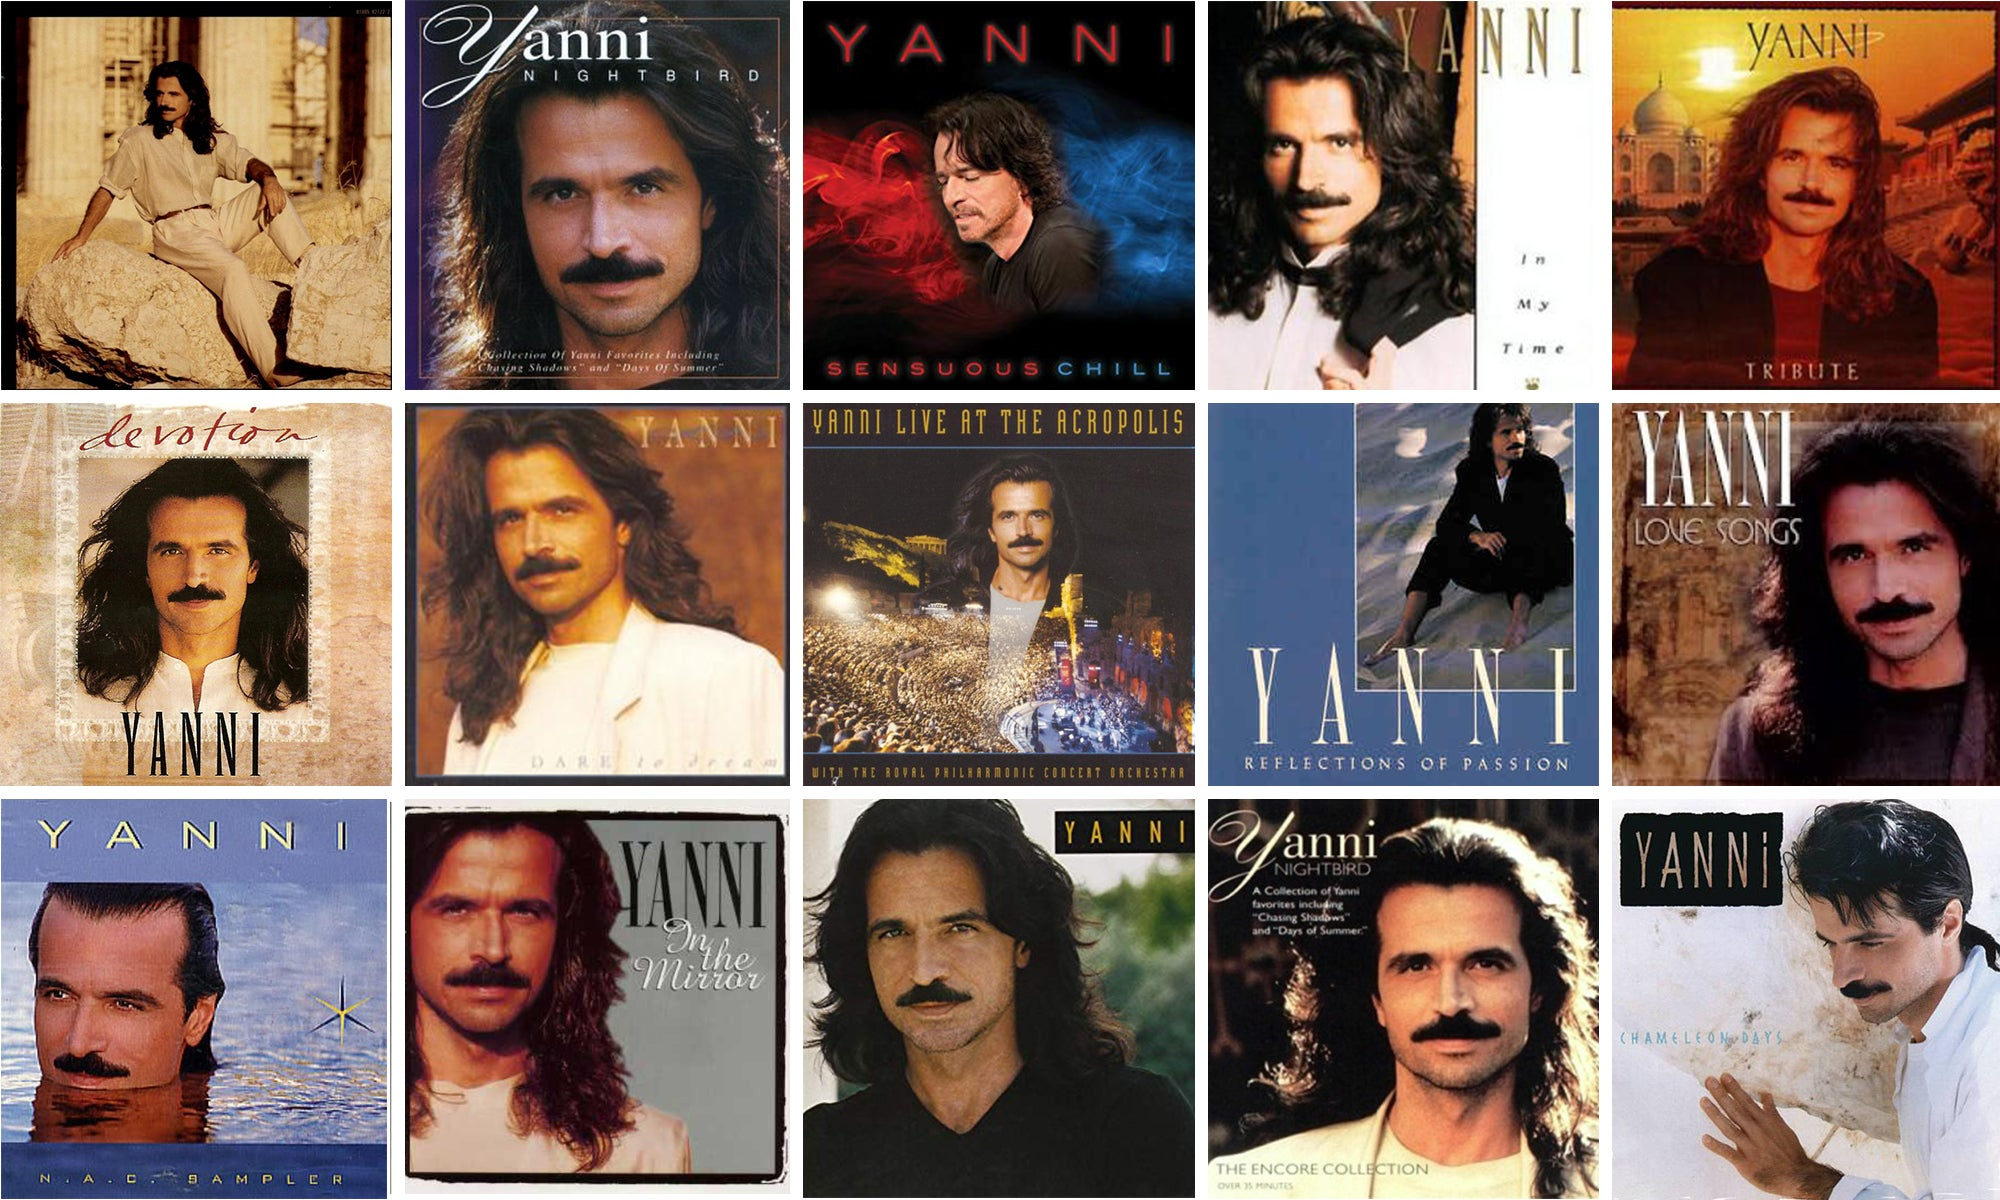 A grid of Yanni album covers